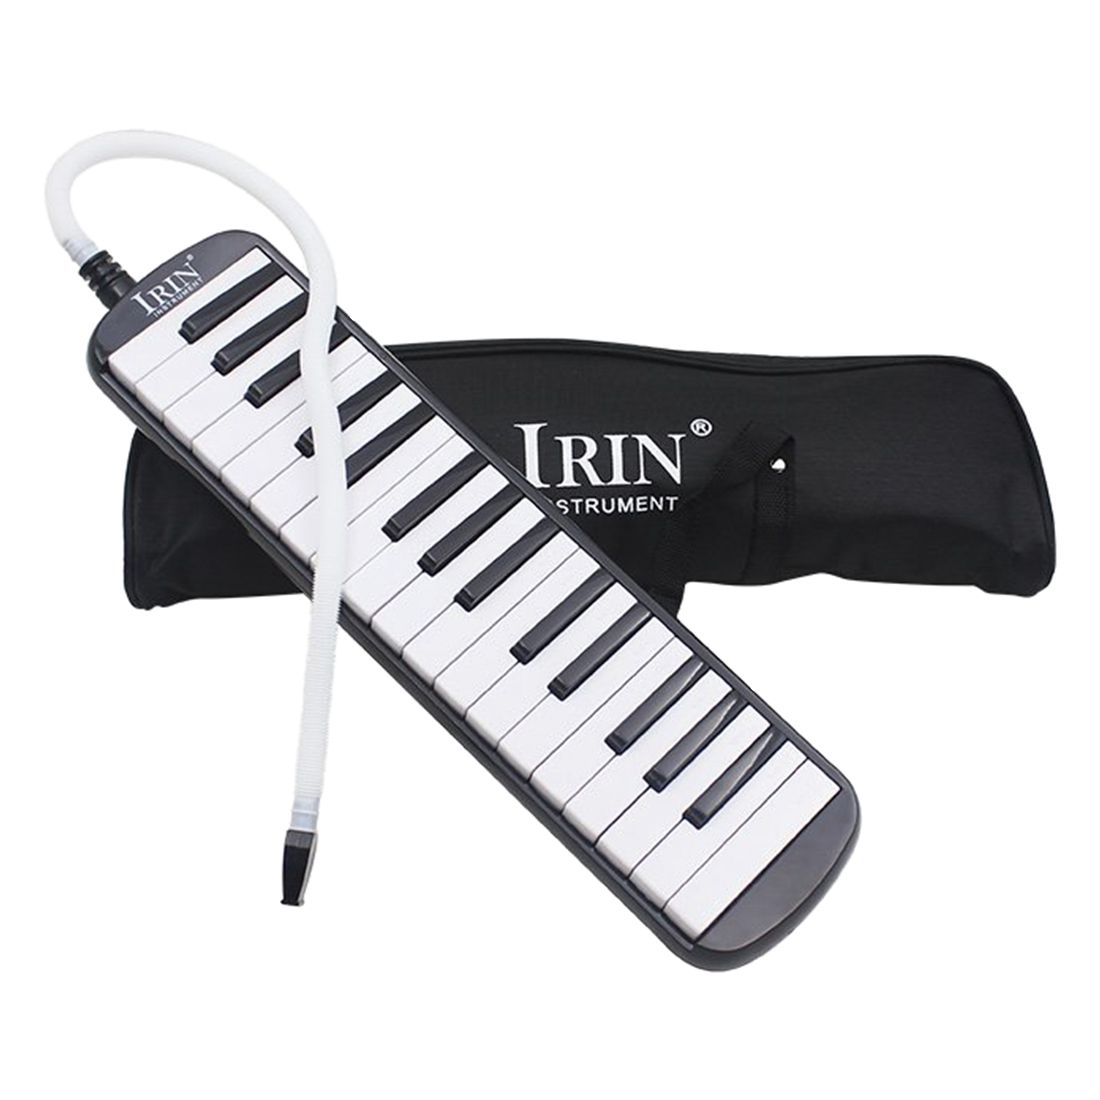 IRIN 1 set 32 Key Piano Style Melodica With Box Organ Accordion Mouth Piece Blow Key